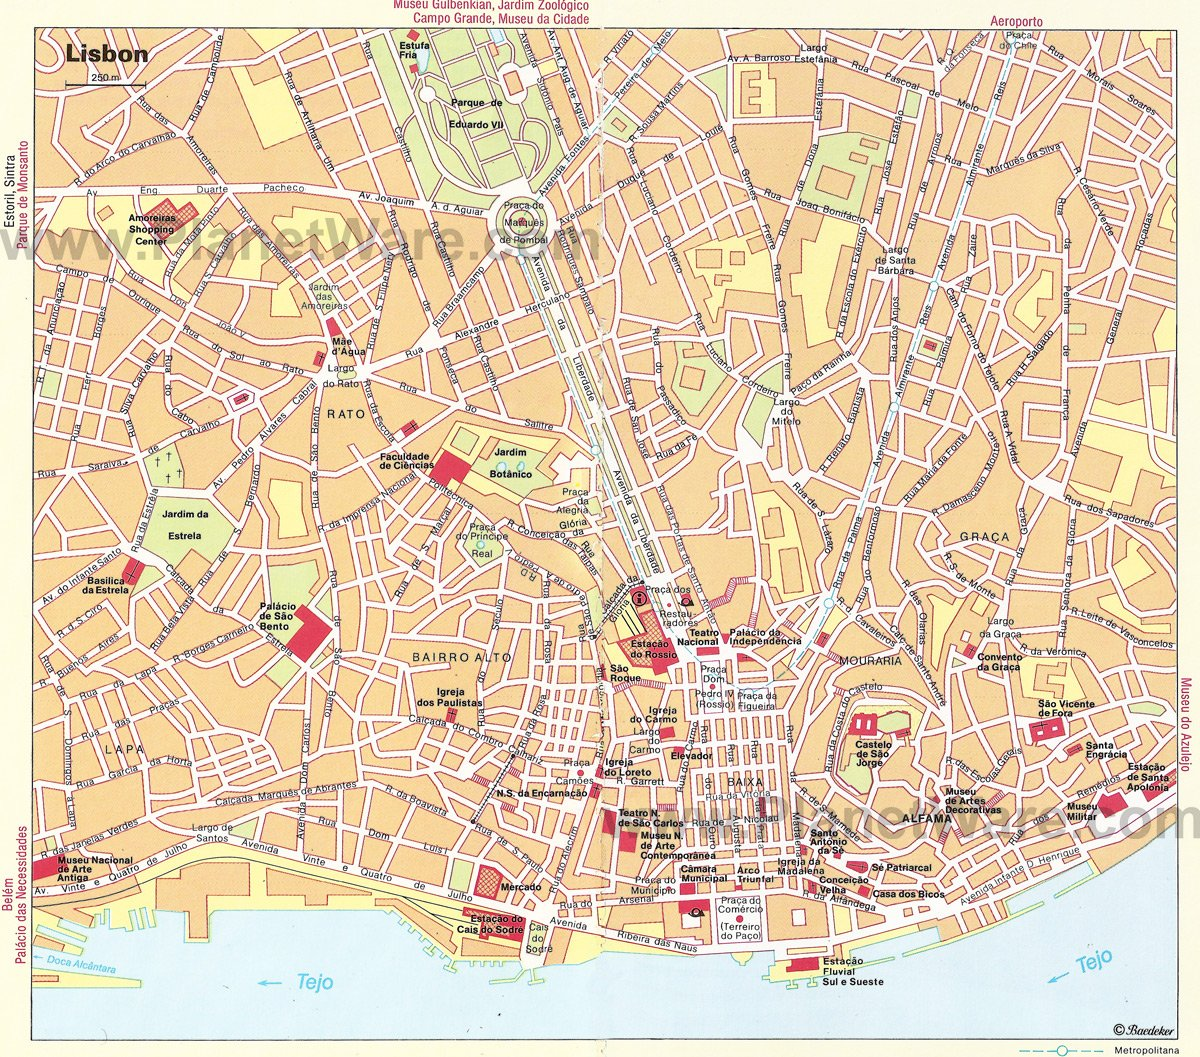 20 Top-Rated Tourist Attractions in Lisbon | PlanetWare Lisbon Map